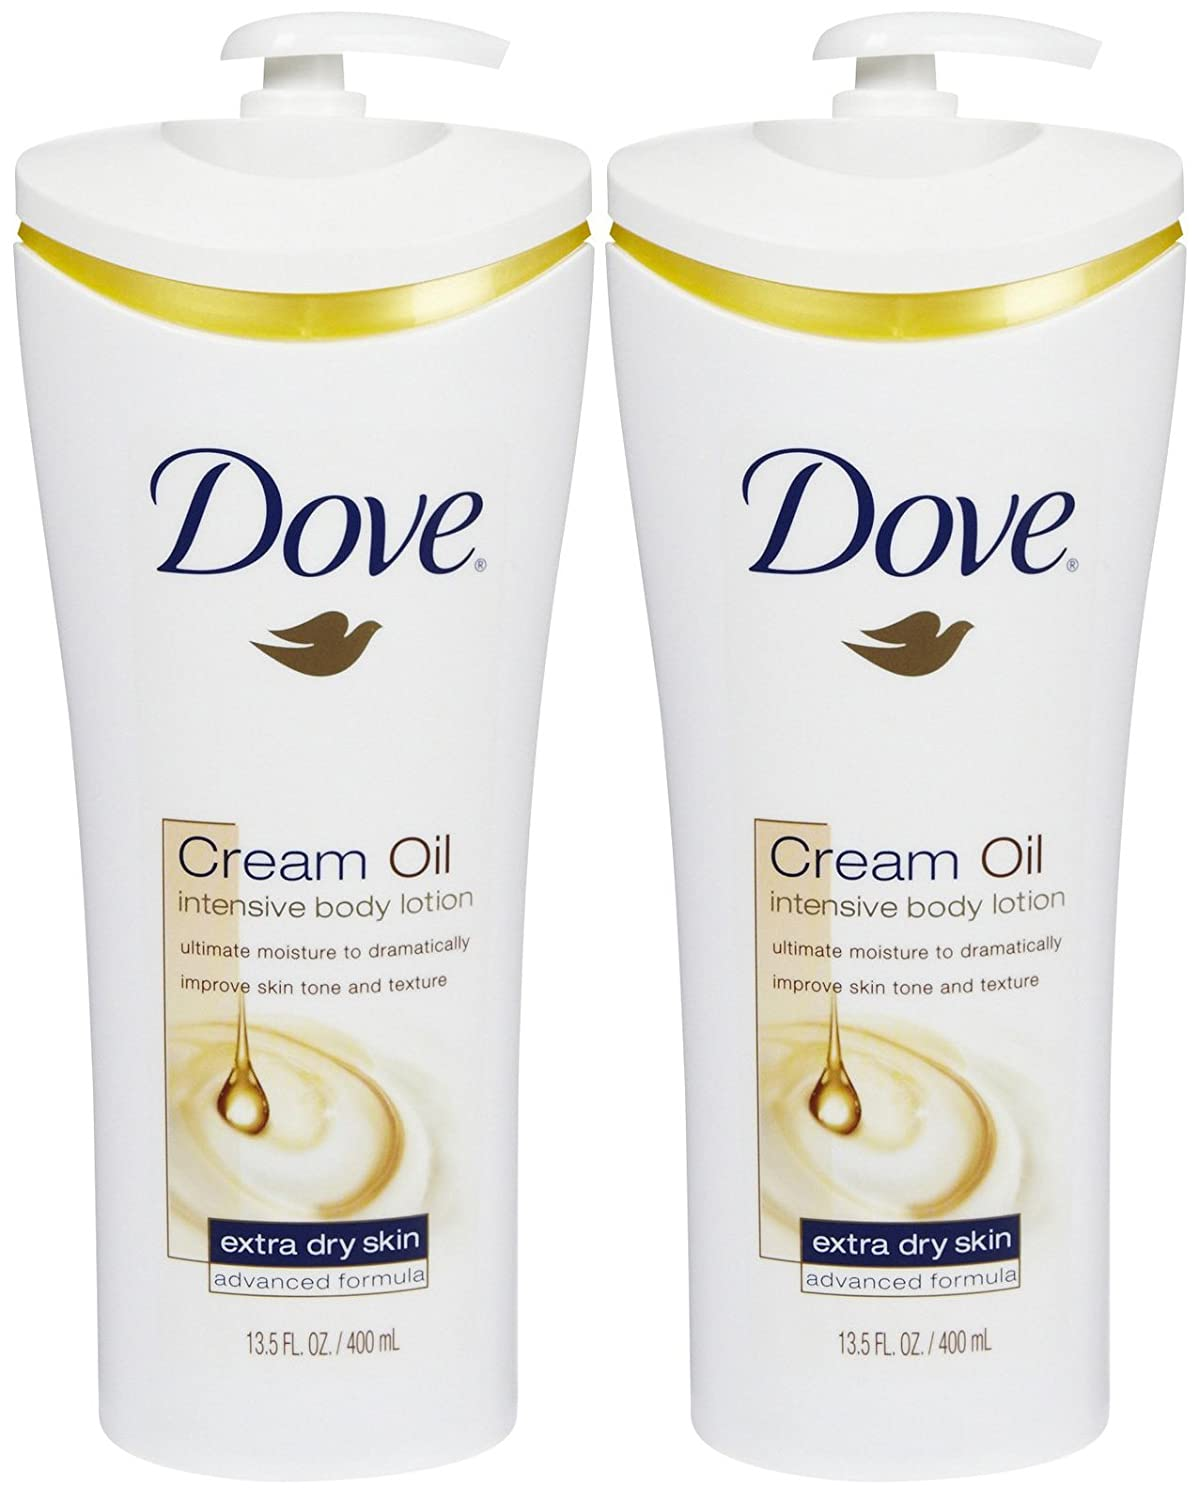 Dove Cream Oil Intensive Body Lotion - 13.5 oz - 2 pk